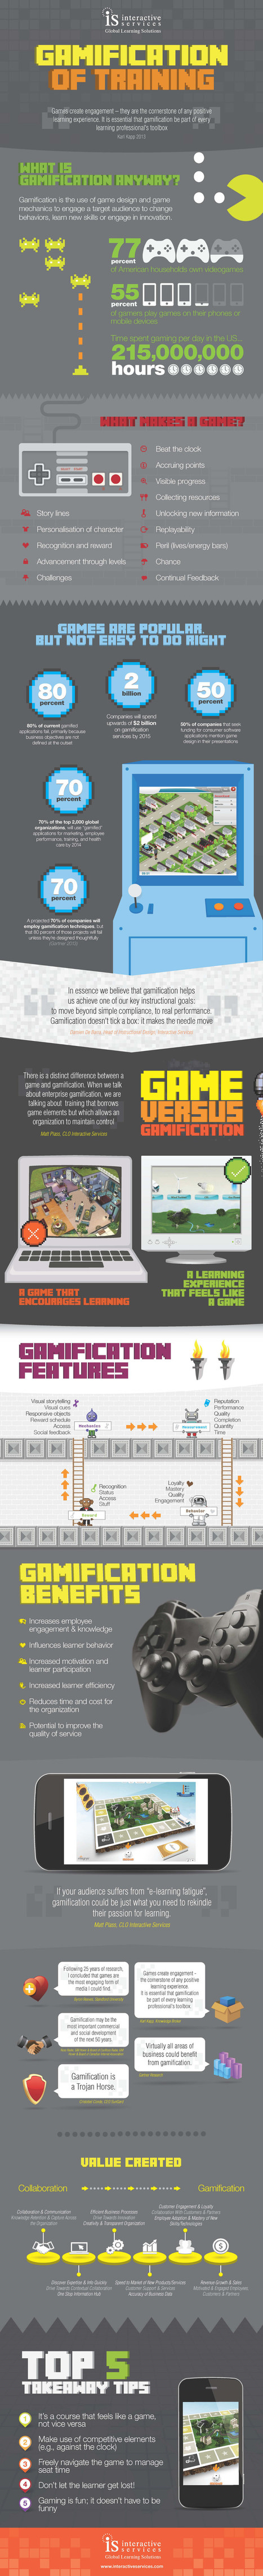 Gamification of Training Infographic - e-Learning Infographics | 21st C Learning | Scoop.it